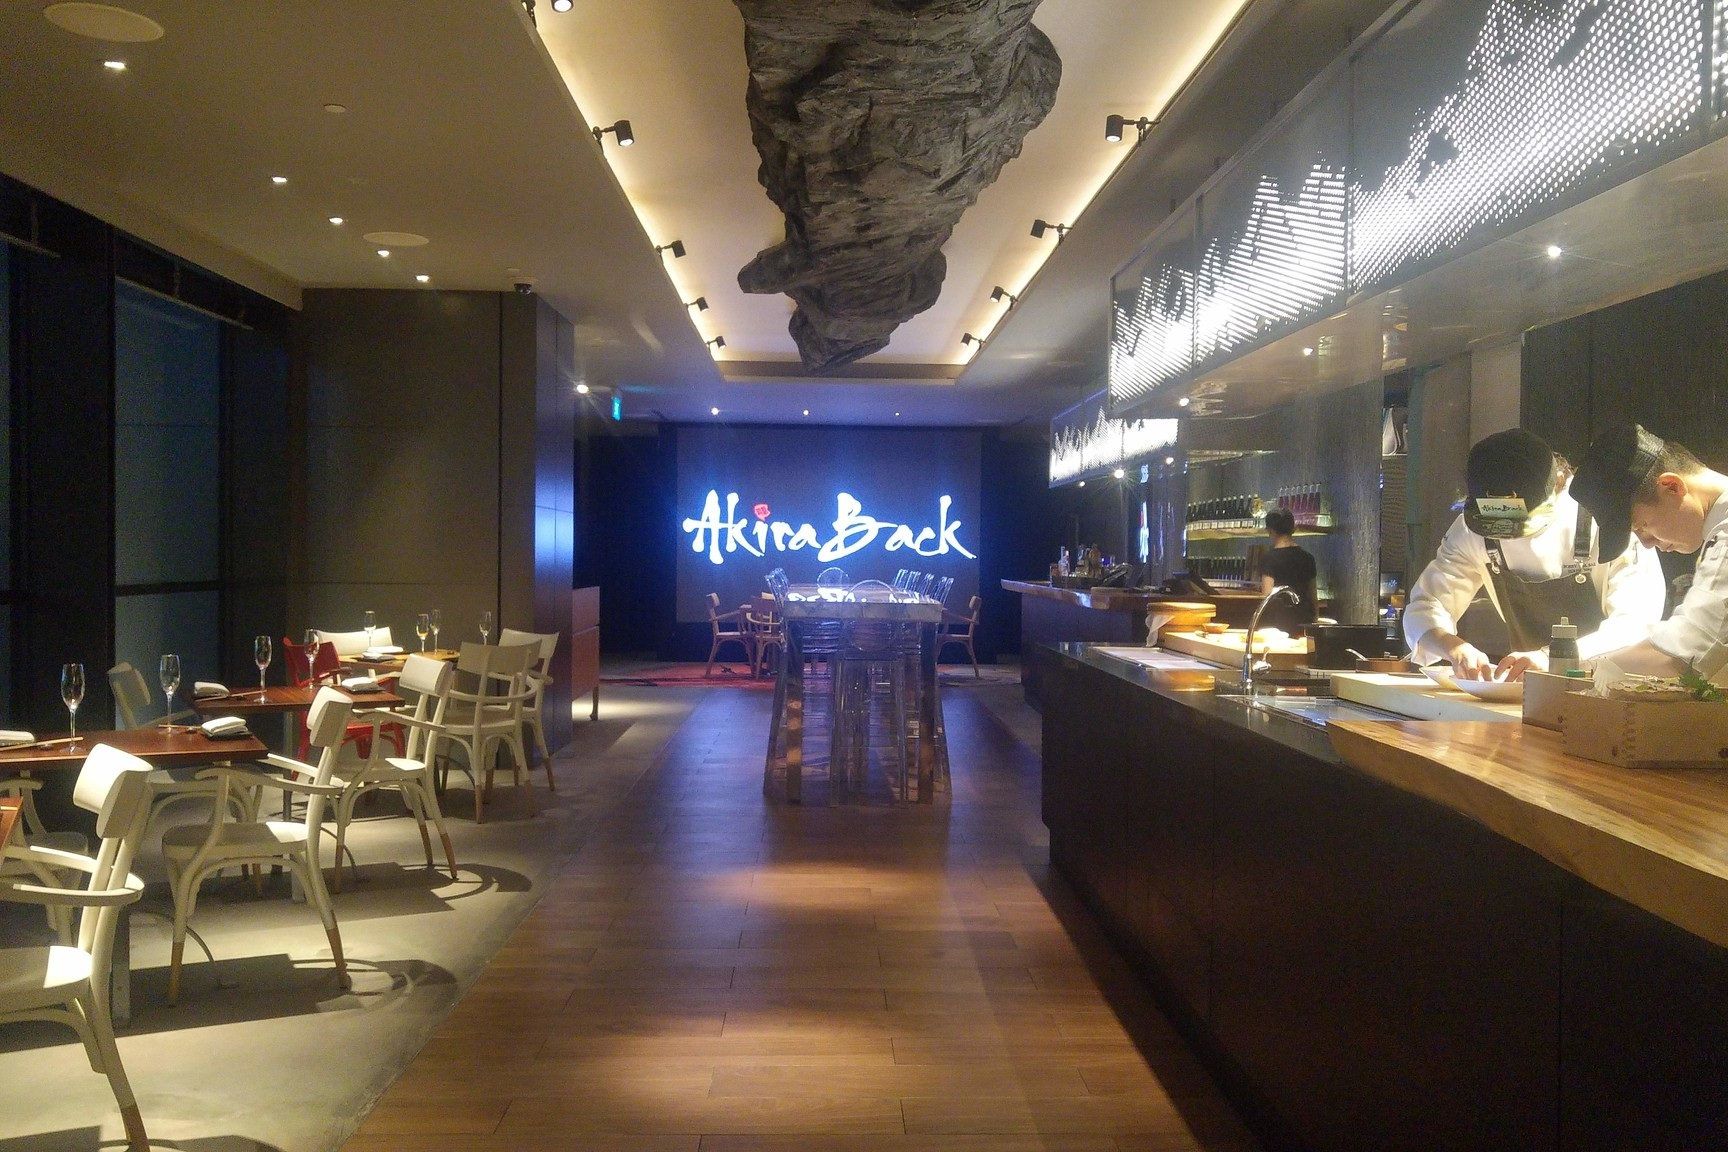 JW Marriott Singapore South Beach – Akira Back restaurant